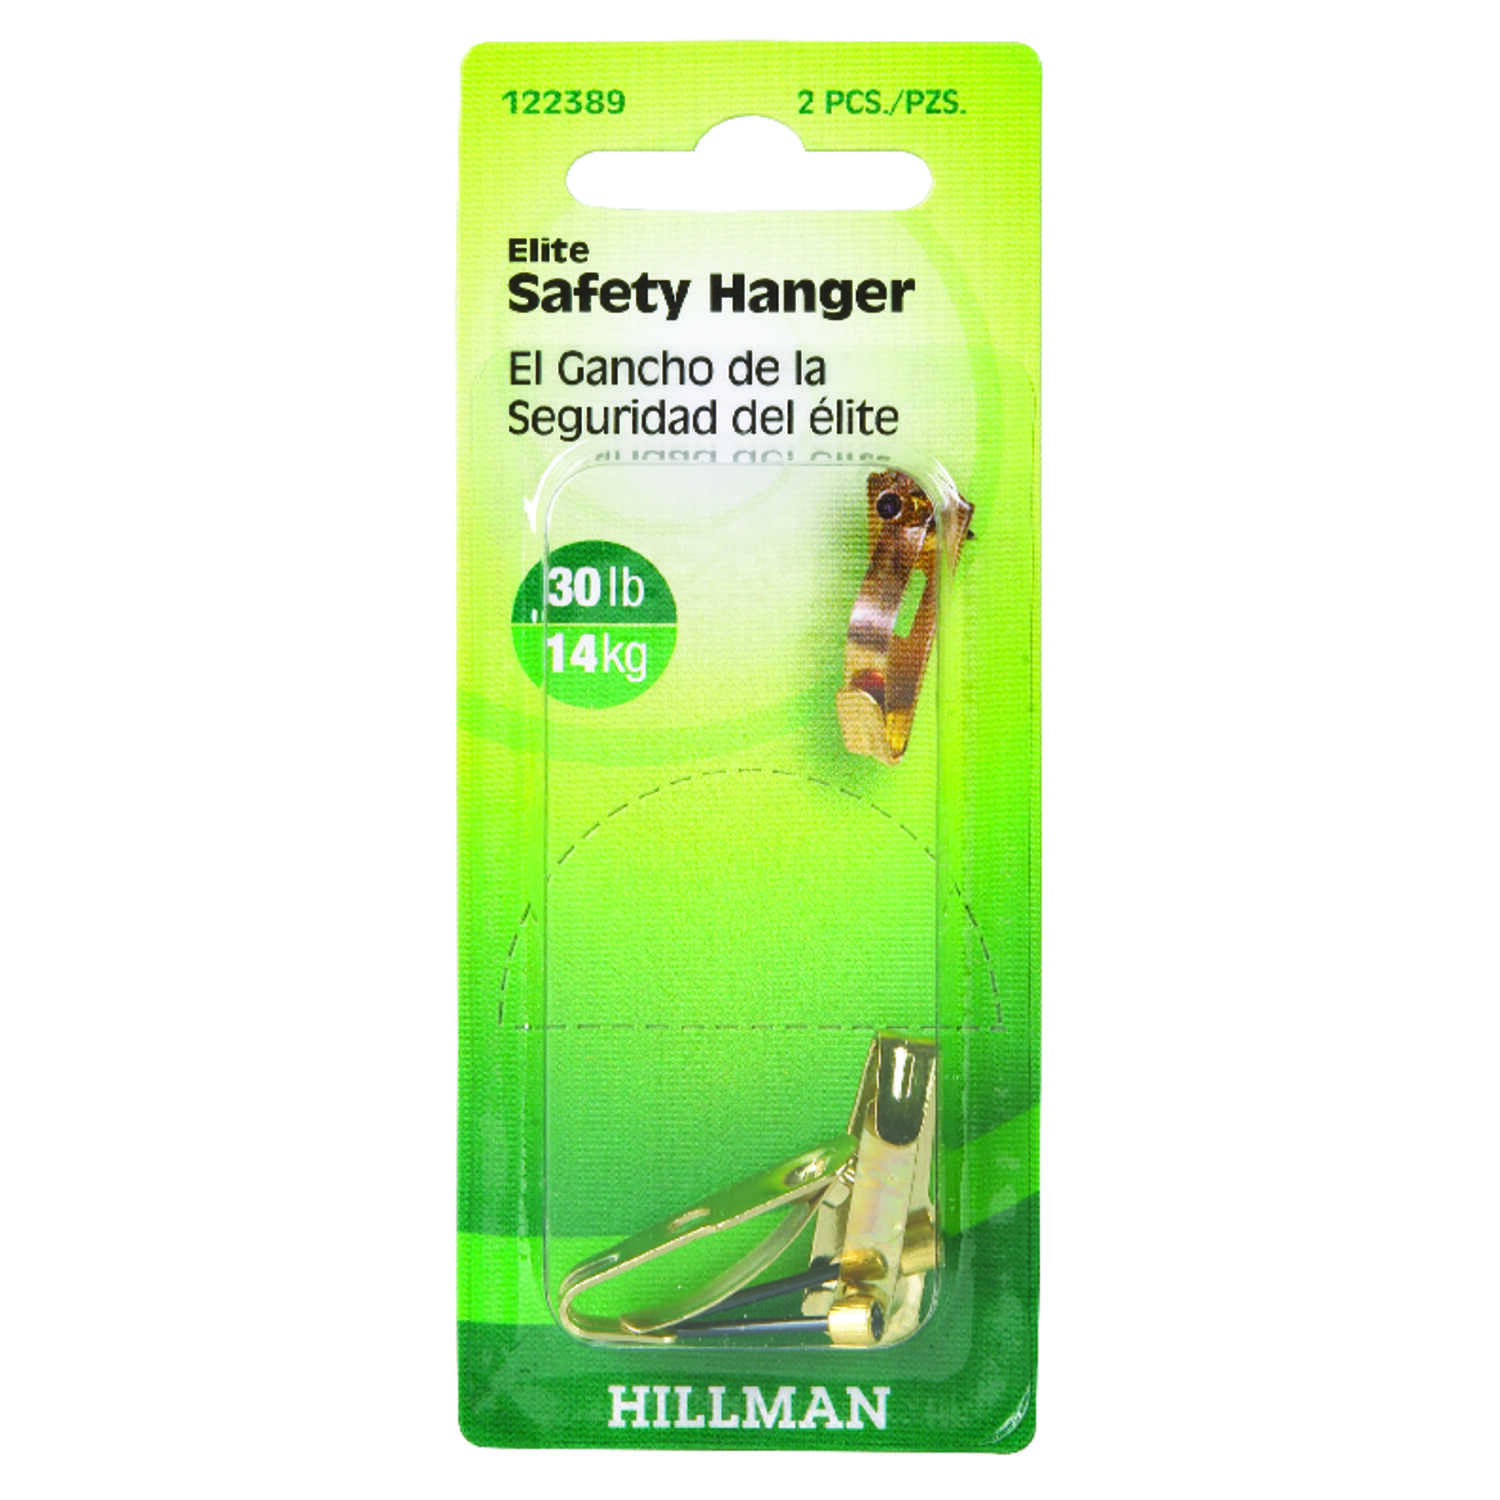 HILLMAN  AnchorWire  Brass-Plated  Steel  Picture Hanger  30 lb. 2 pk Safety